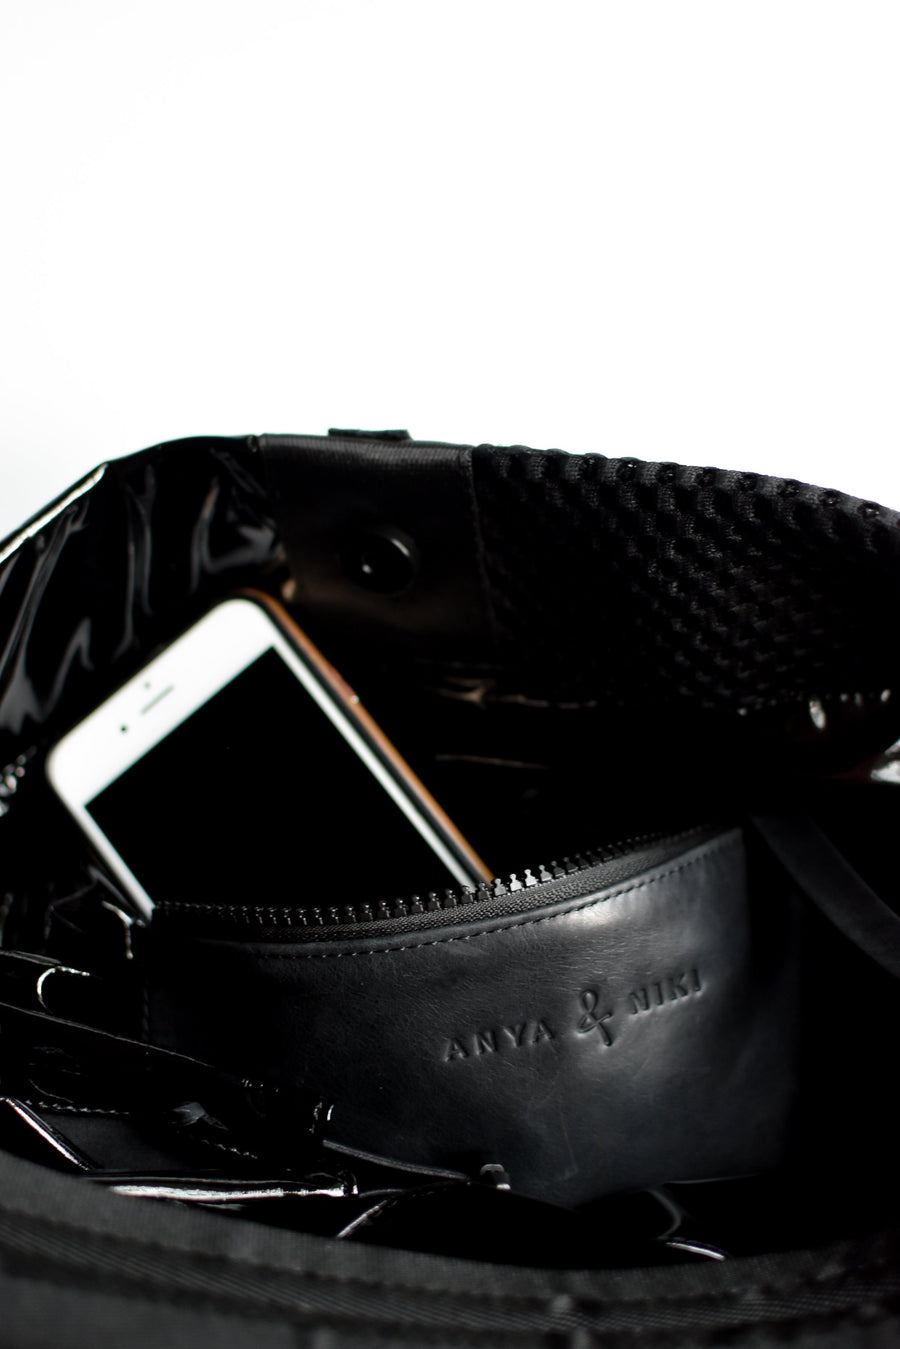 Close up of interior leather pocket on black sporty mesh and shiny vinyl tote bag.